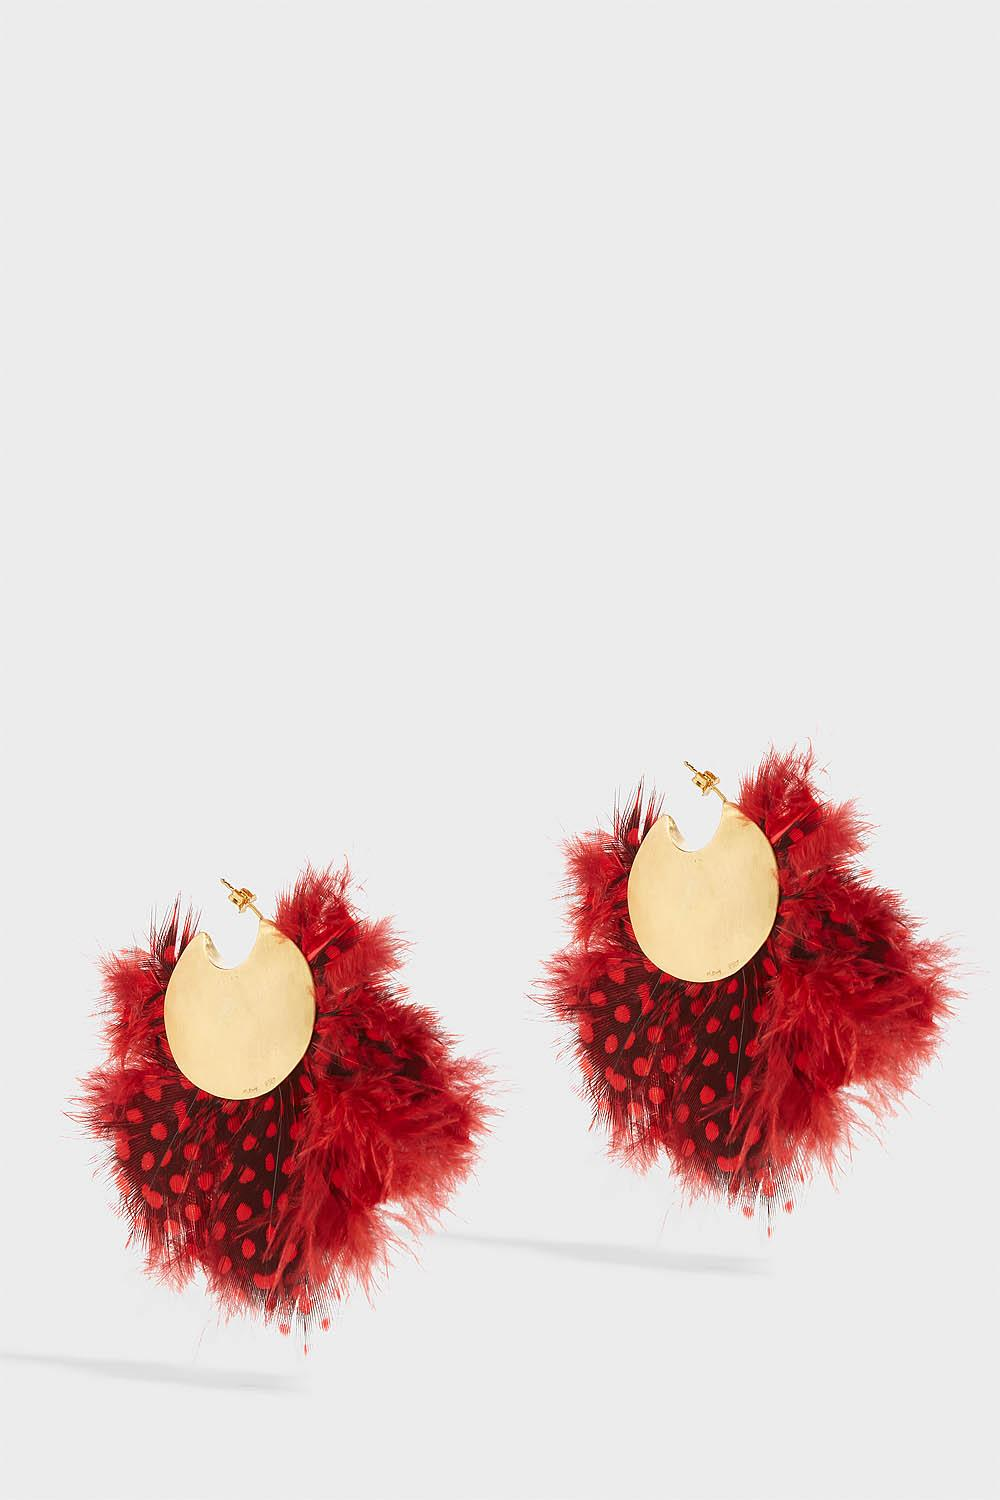 KATERINA MAKRIYIANNI GOLD-TONE FEATHER EARRINGS, SIZE OS, WOMEN, RED